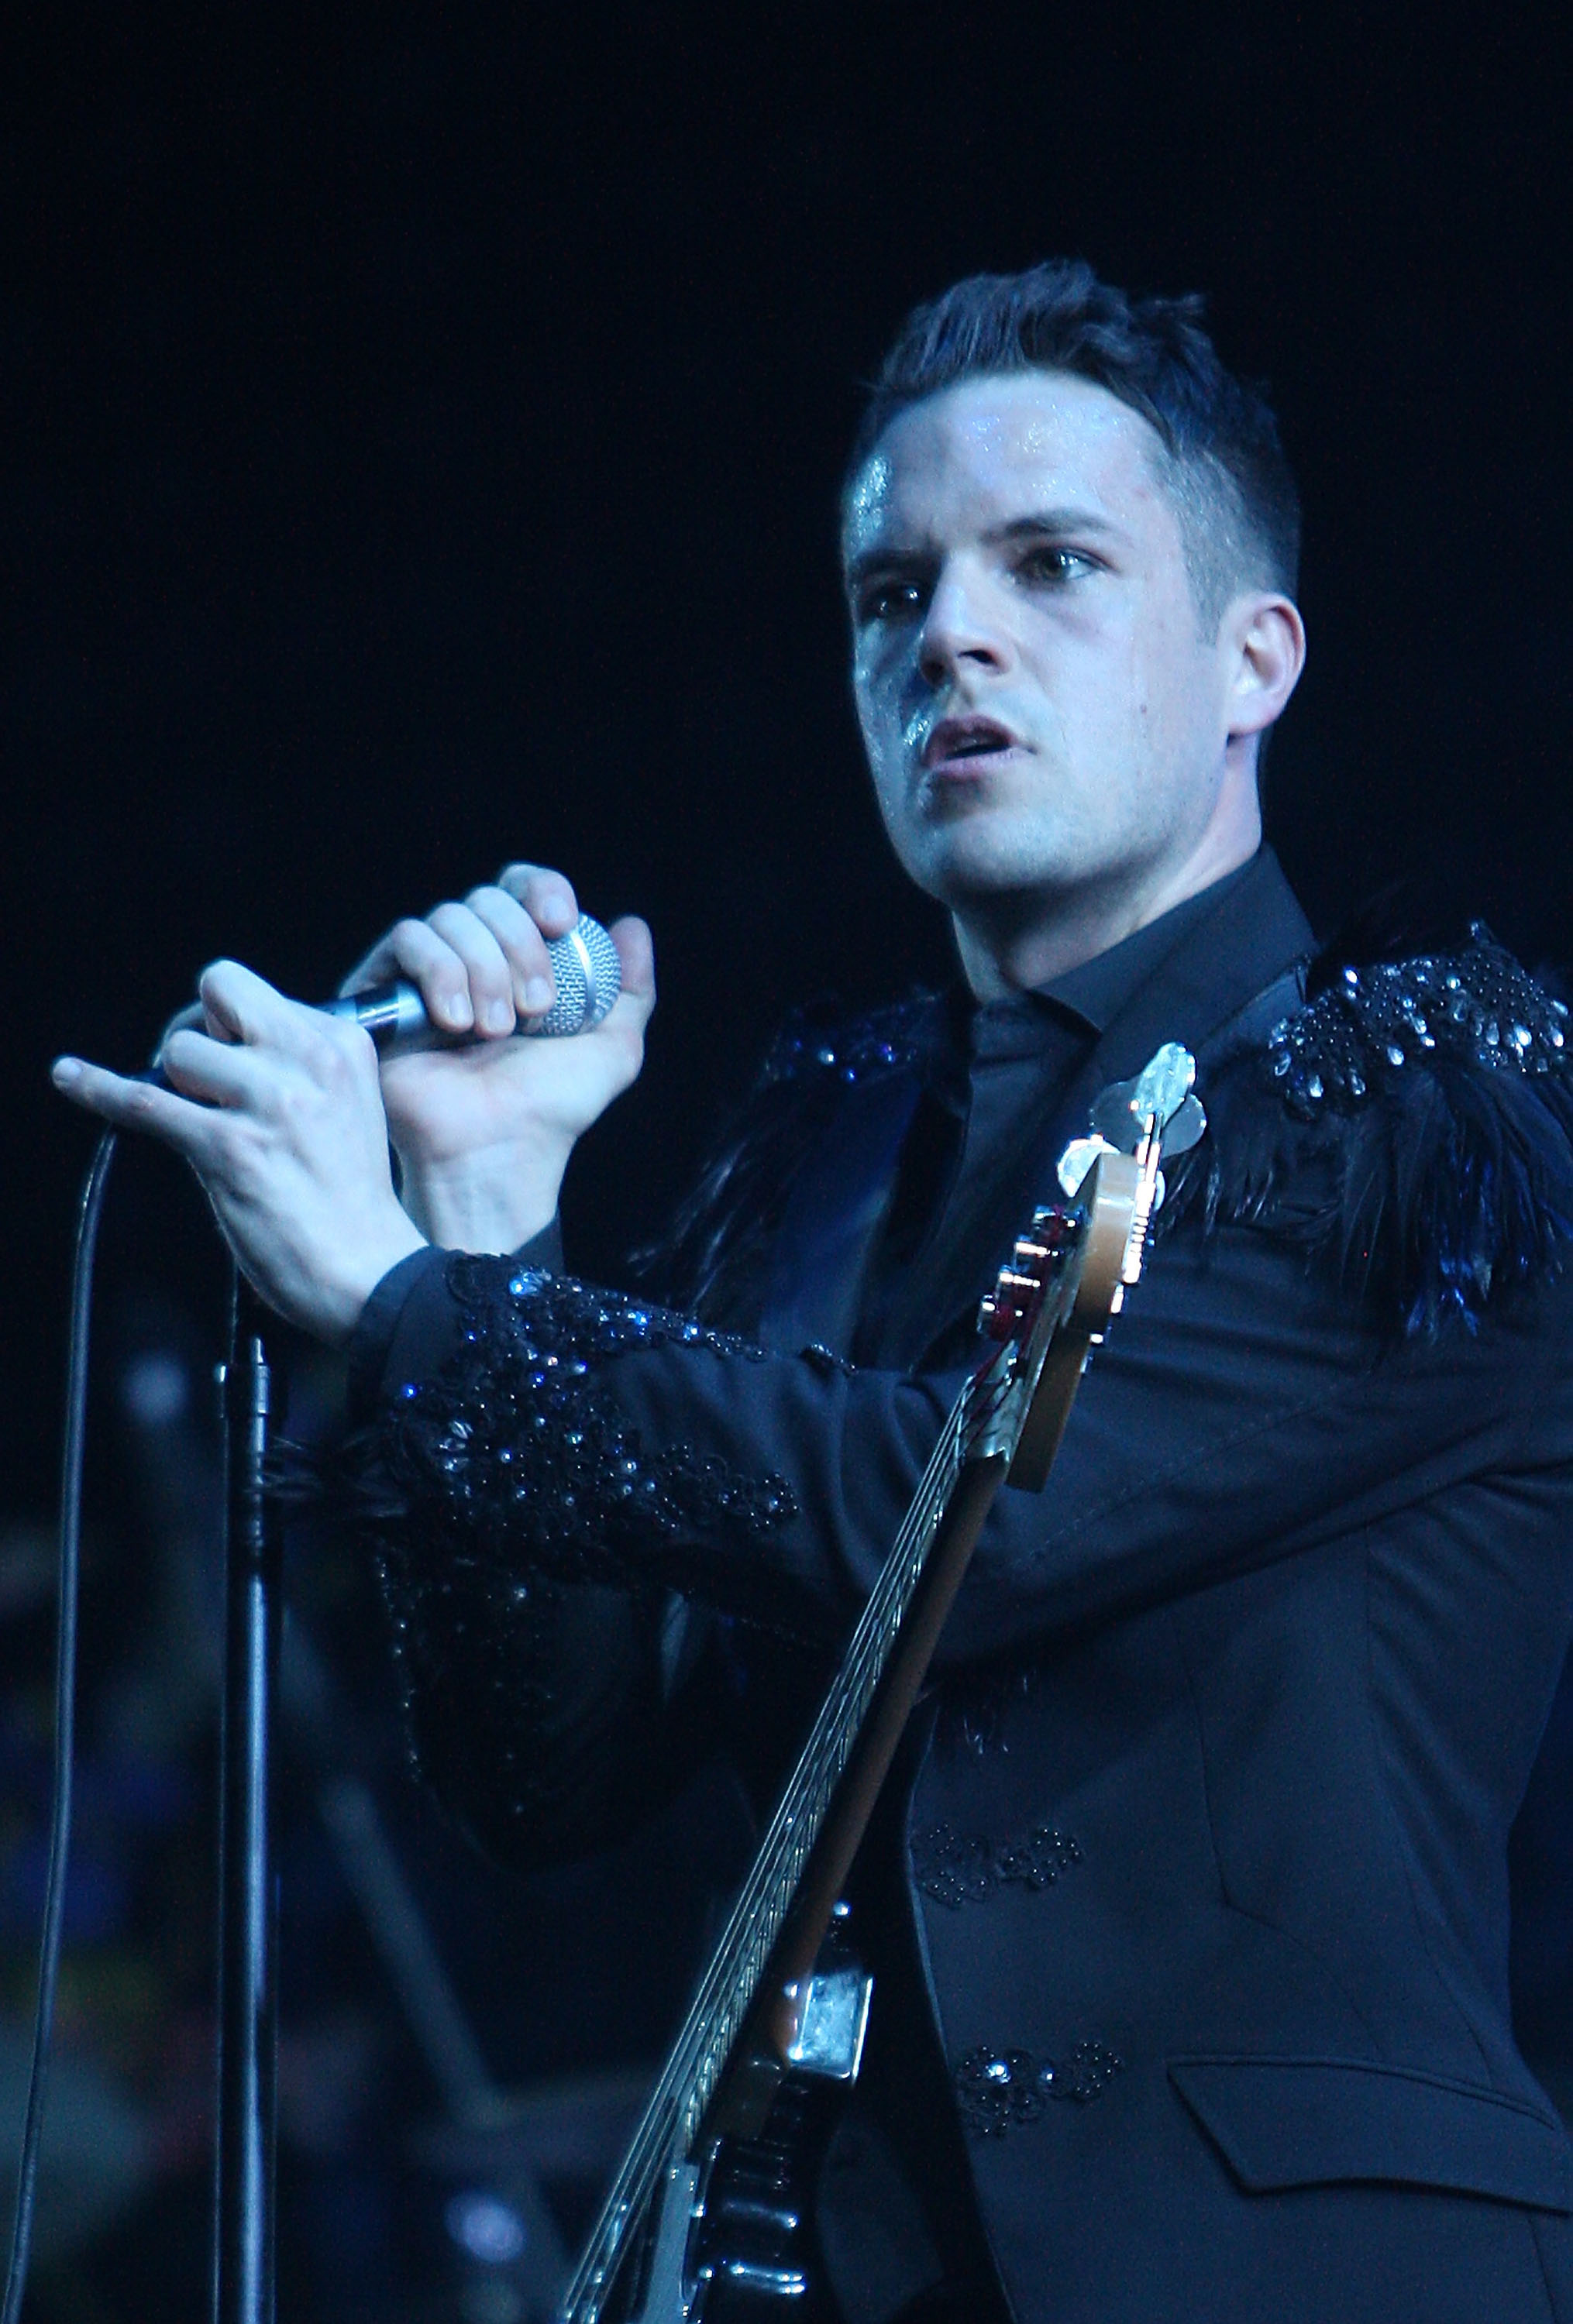 Brandon Flowers, The Killers